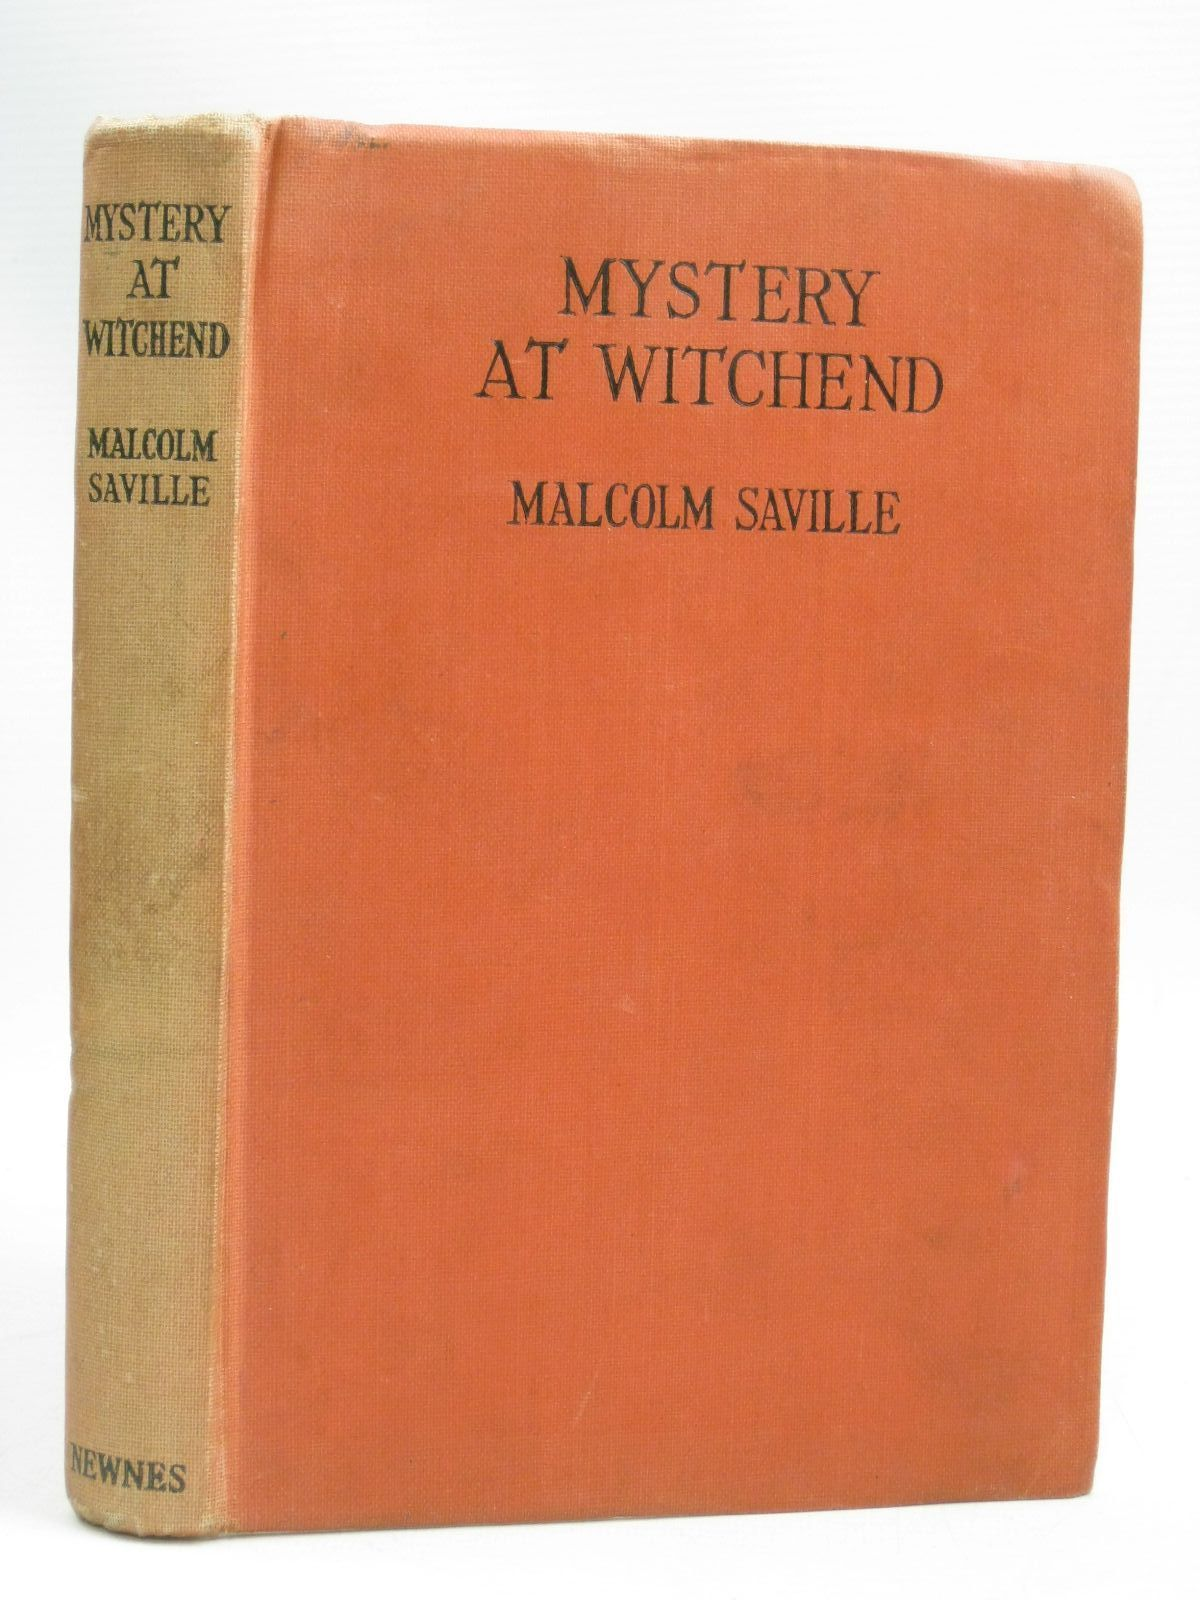 Photo of MYSTERY AT WITCHEND written by Saville, Malcolm illustrated by Breary, G.E. published by George Newnes Ltd. (STOCK CODE: 1506068)  for sale by Stella & Rose's Books